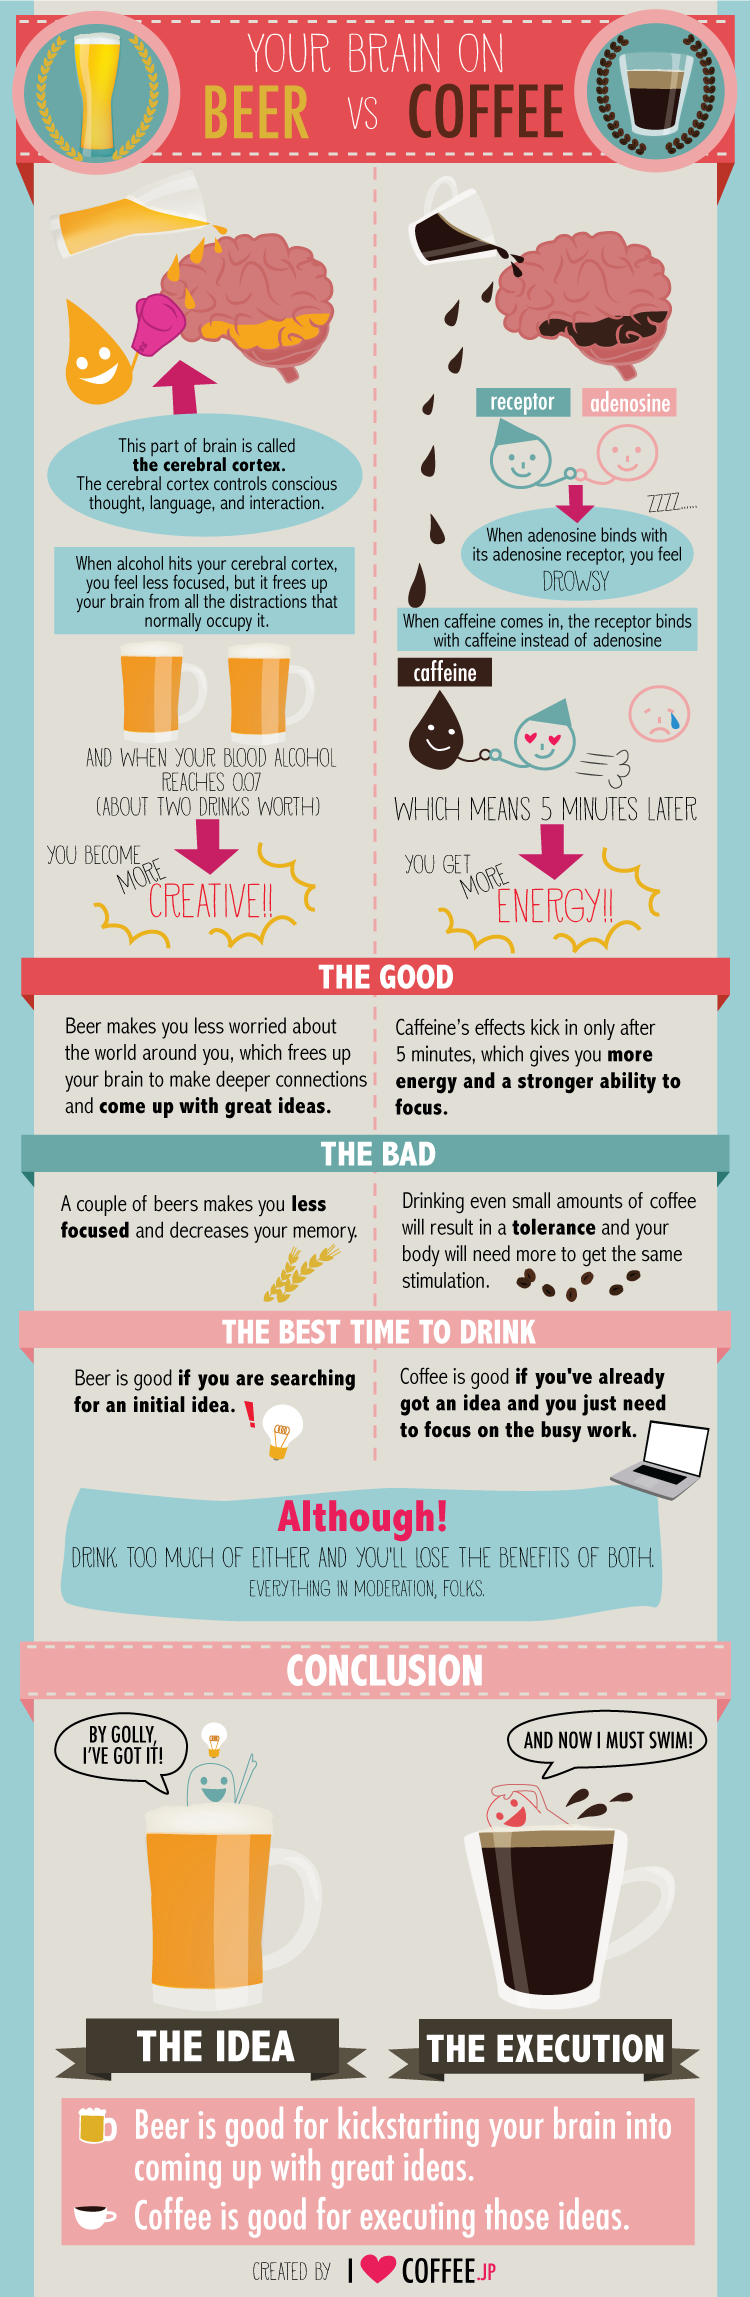 beercoffee - How Brains Work on Beer vs Coffee